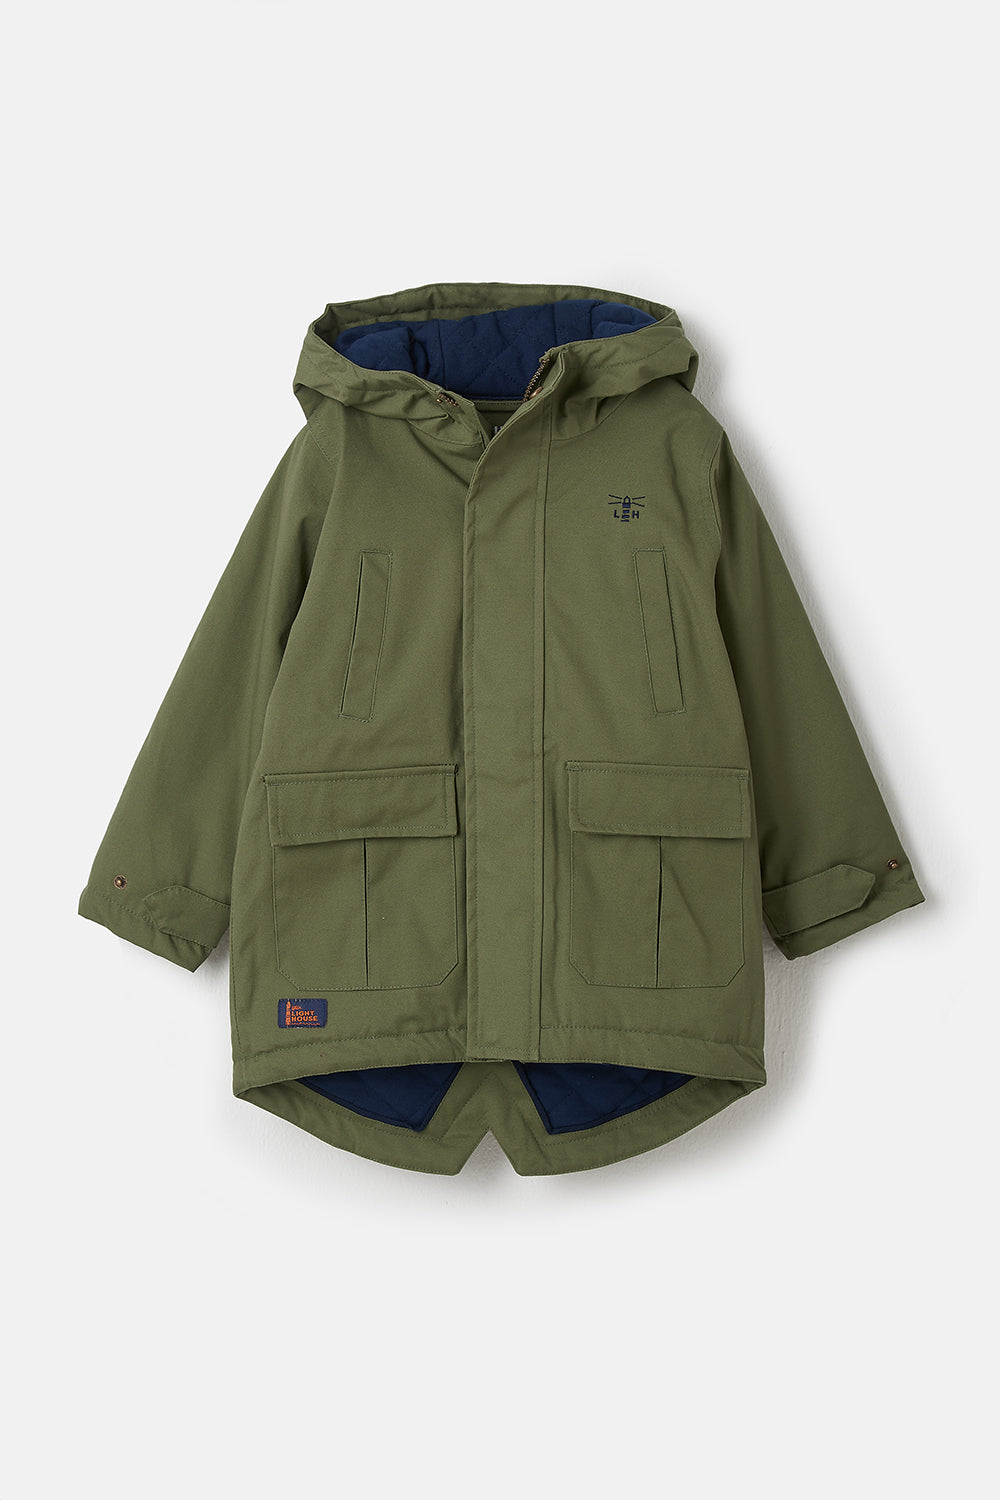 Lighthouse Harrison Boys Warm Waterproof Coat - Green